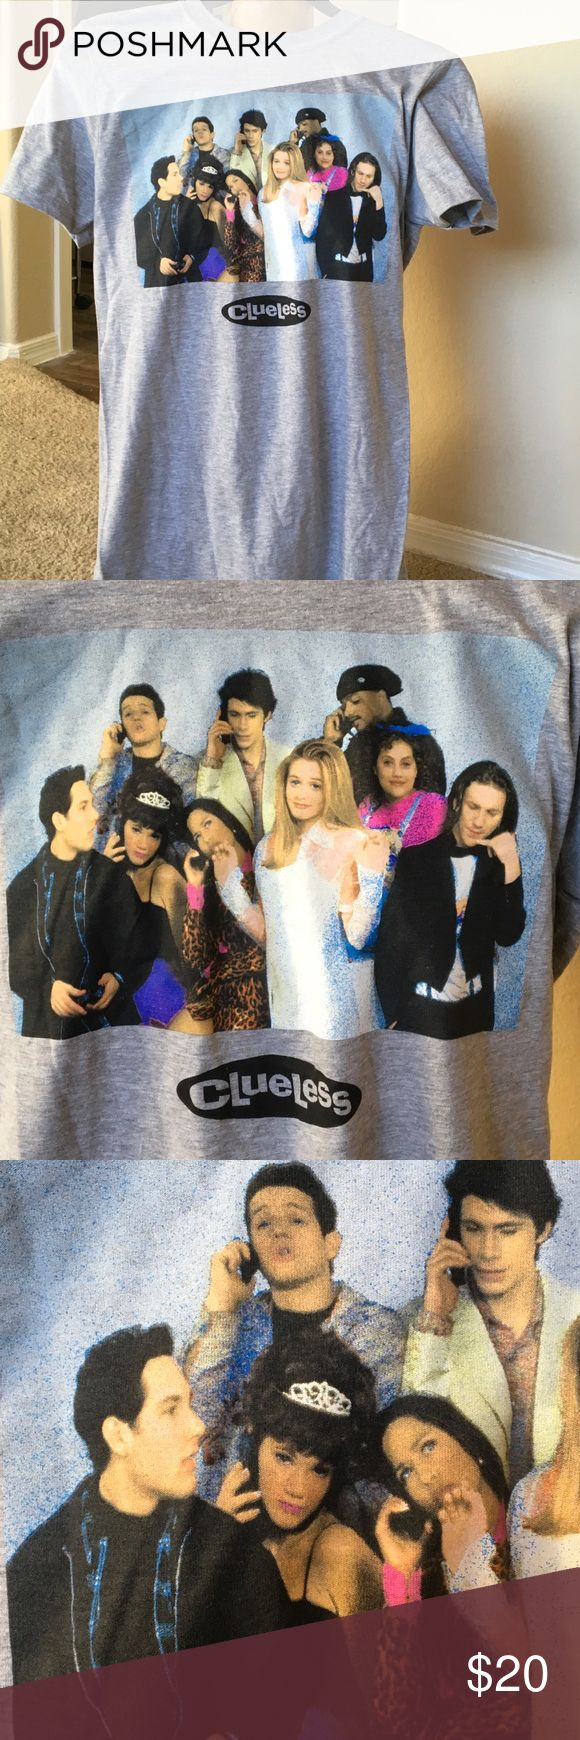 """CLUELESS Tee SHIRT NEW solid GRAY cast design S Vintage look tee original cast of CLUELESS ALicia Silverstone front & center.Made of Poly cotton Blend short sleeved. Halloween coming may be part of your costume.... Small ... 18 3/8"""" underarm - underarm..28"""" shoulder to hem UNISEX have other sizes... Clueless Tops"""